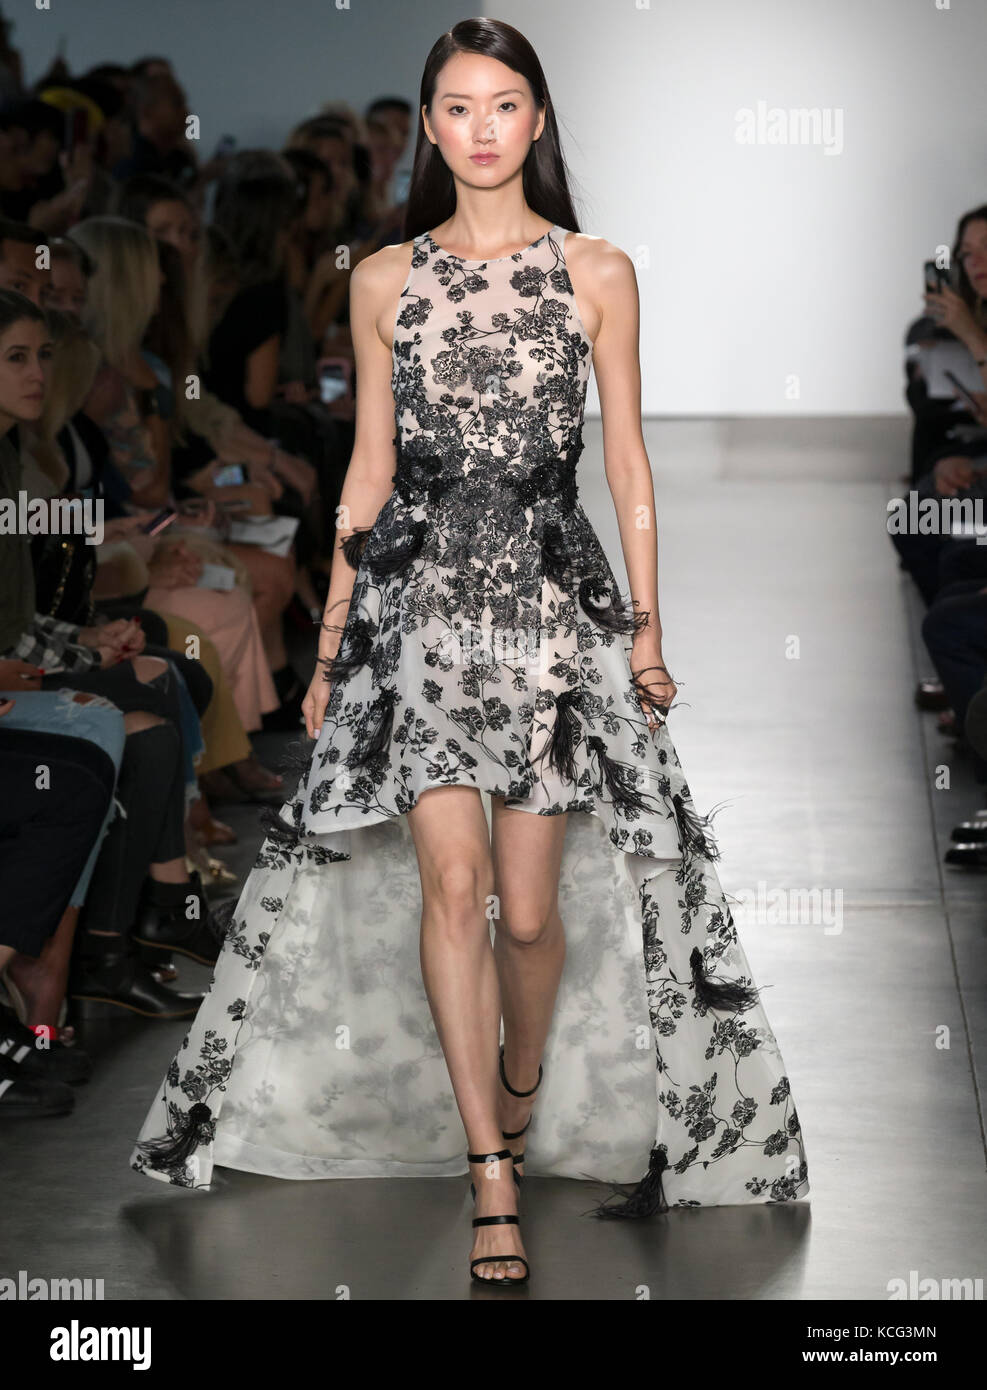 NEW YORK, NY - September 06, 2017: A model walks the runway at the Pamella Roland Spring Summer 2018 fashion show - Stock Image